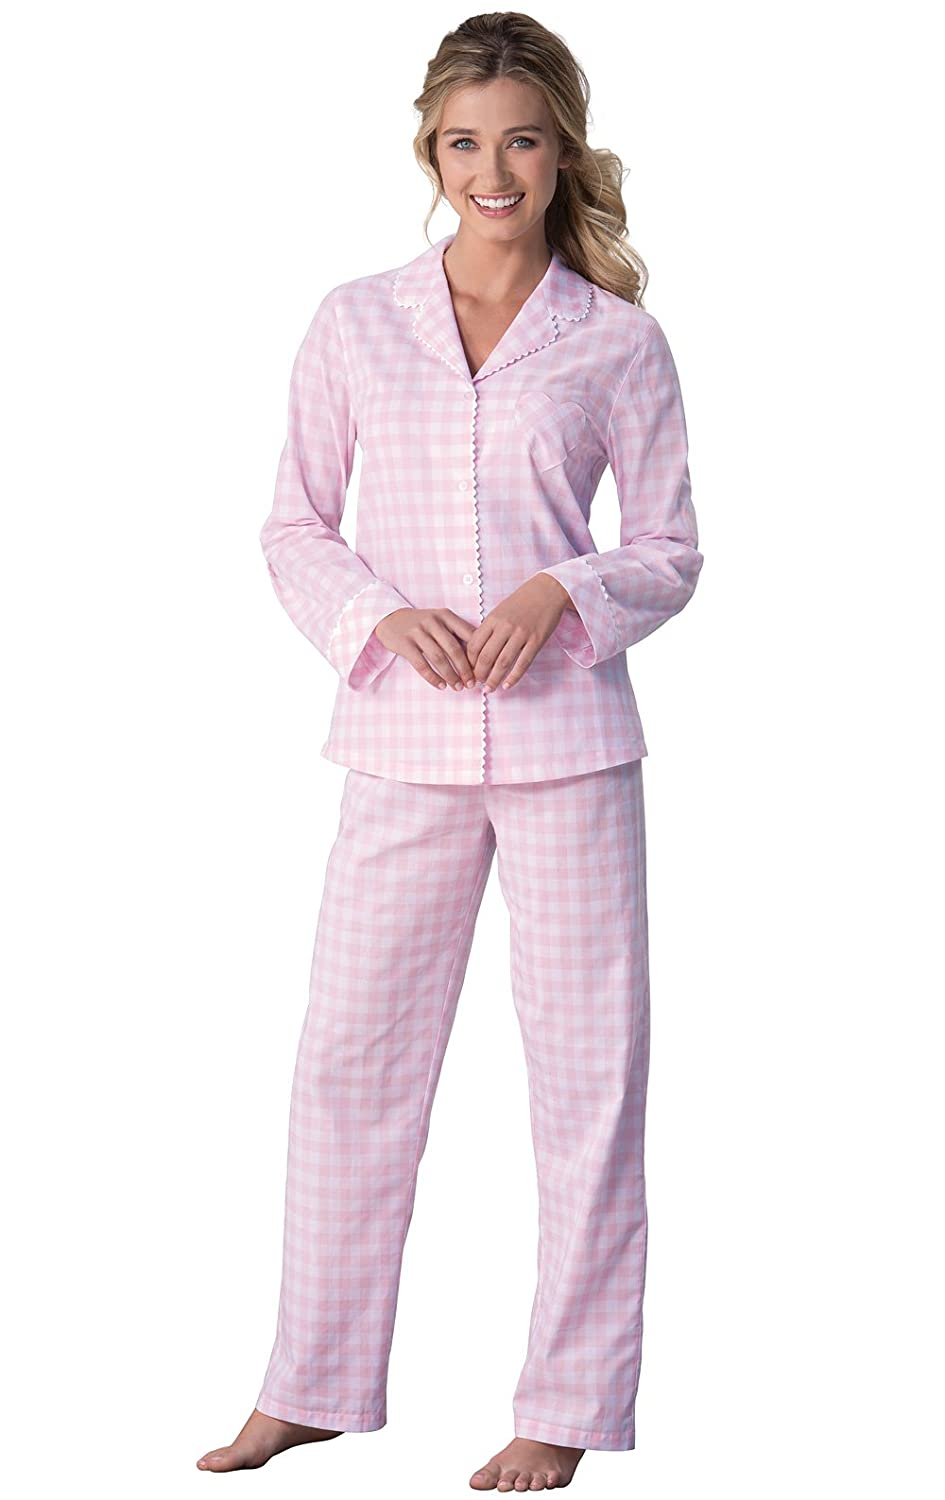 5cbdc5525e65 PajamaGram Women s Pajama Set Cotton - Gingham Plaid Pajamas for Women at  Amazon Women s Clothing store